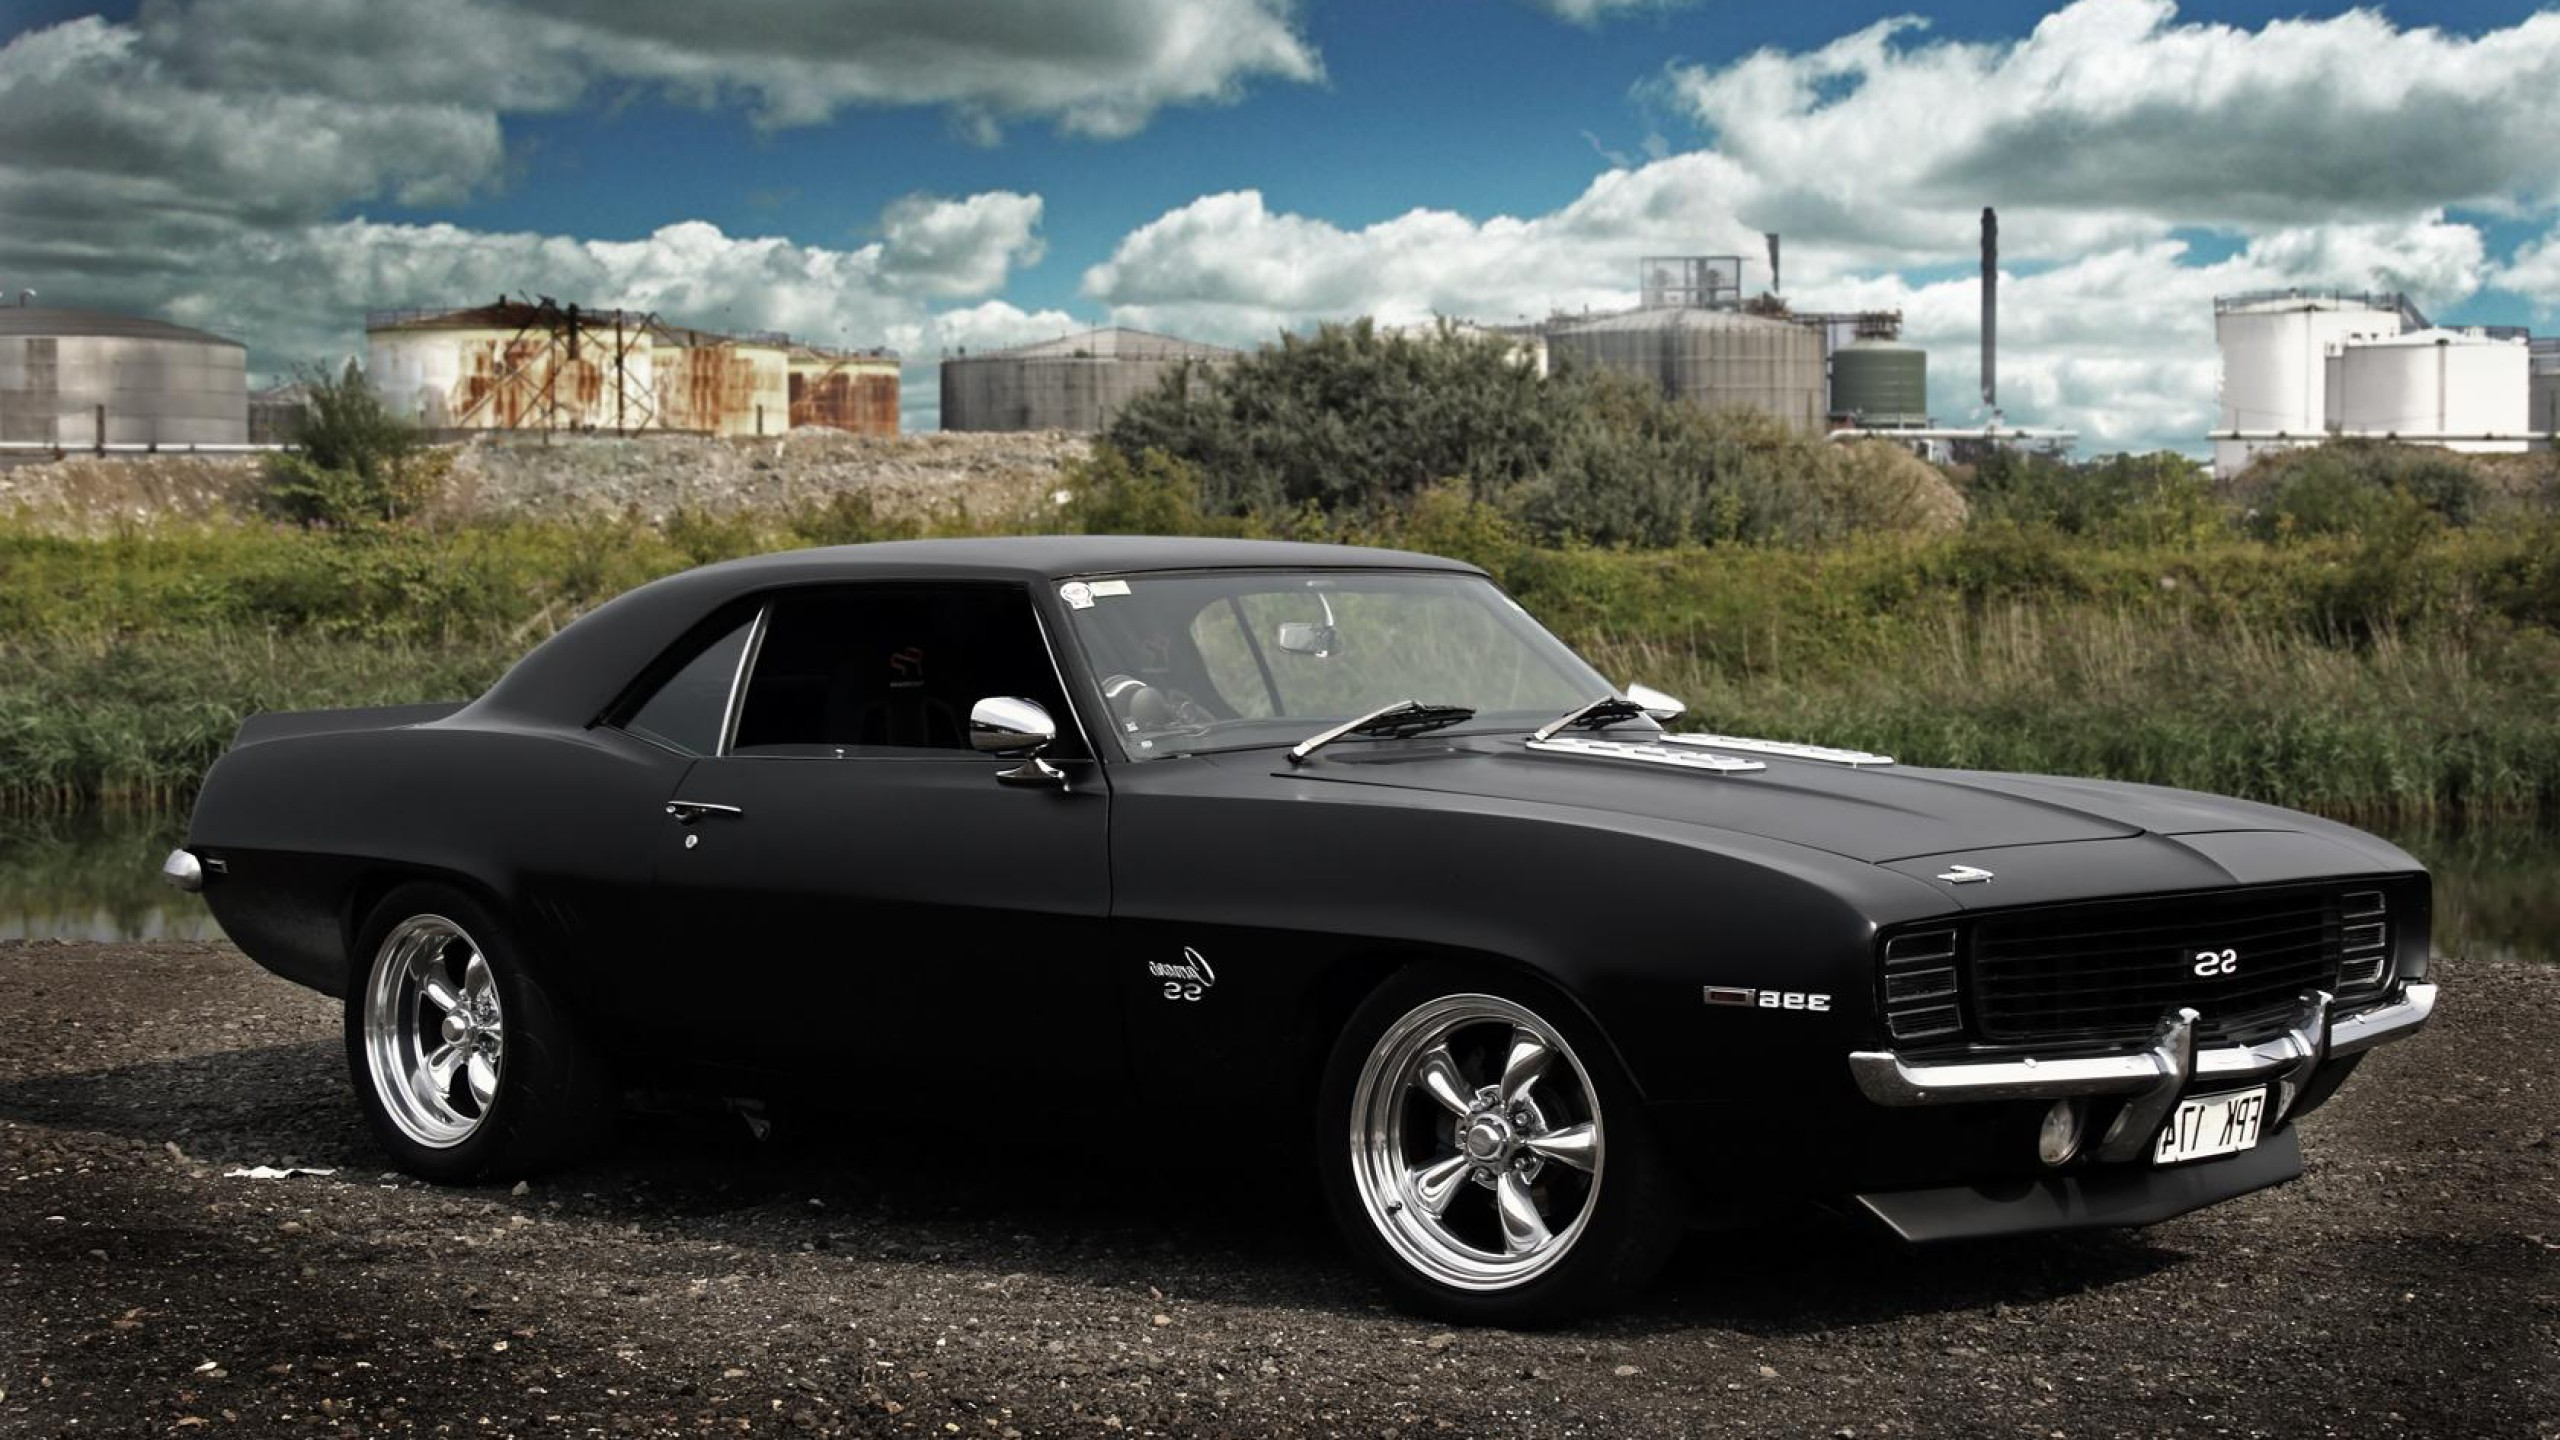 Hd Wallpapers 1080P Muscle Cars   1917556 2560x1440